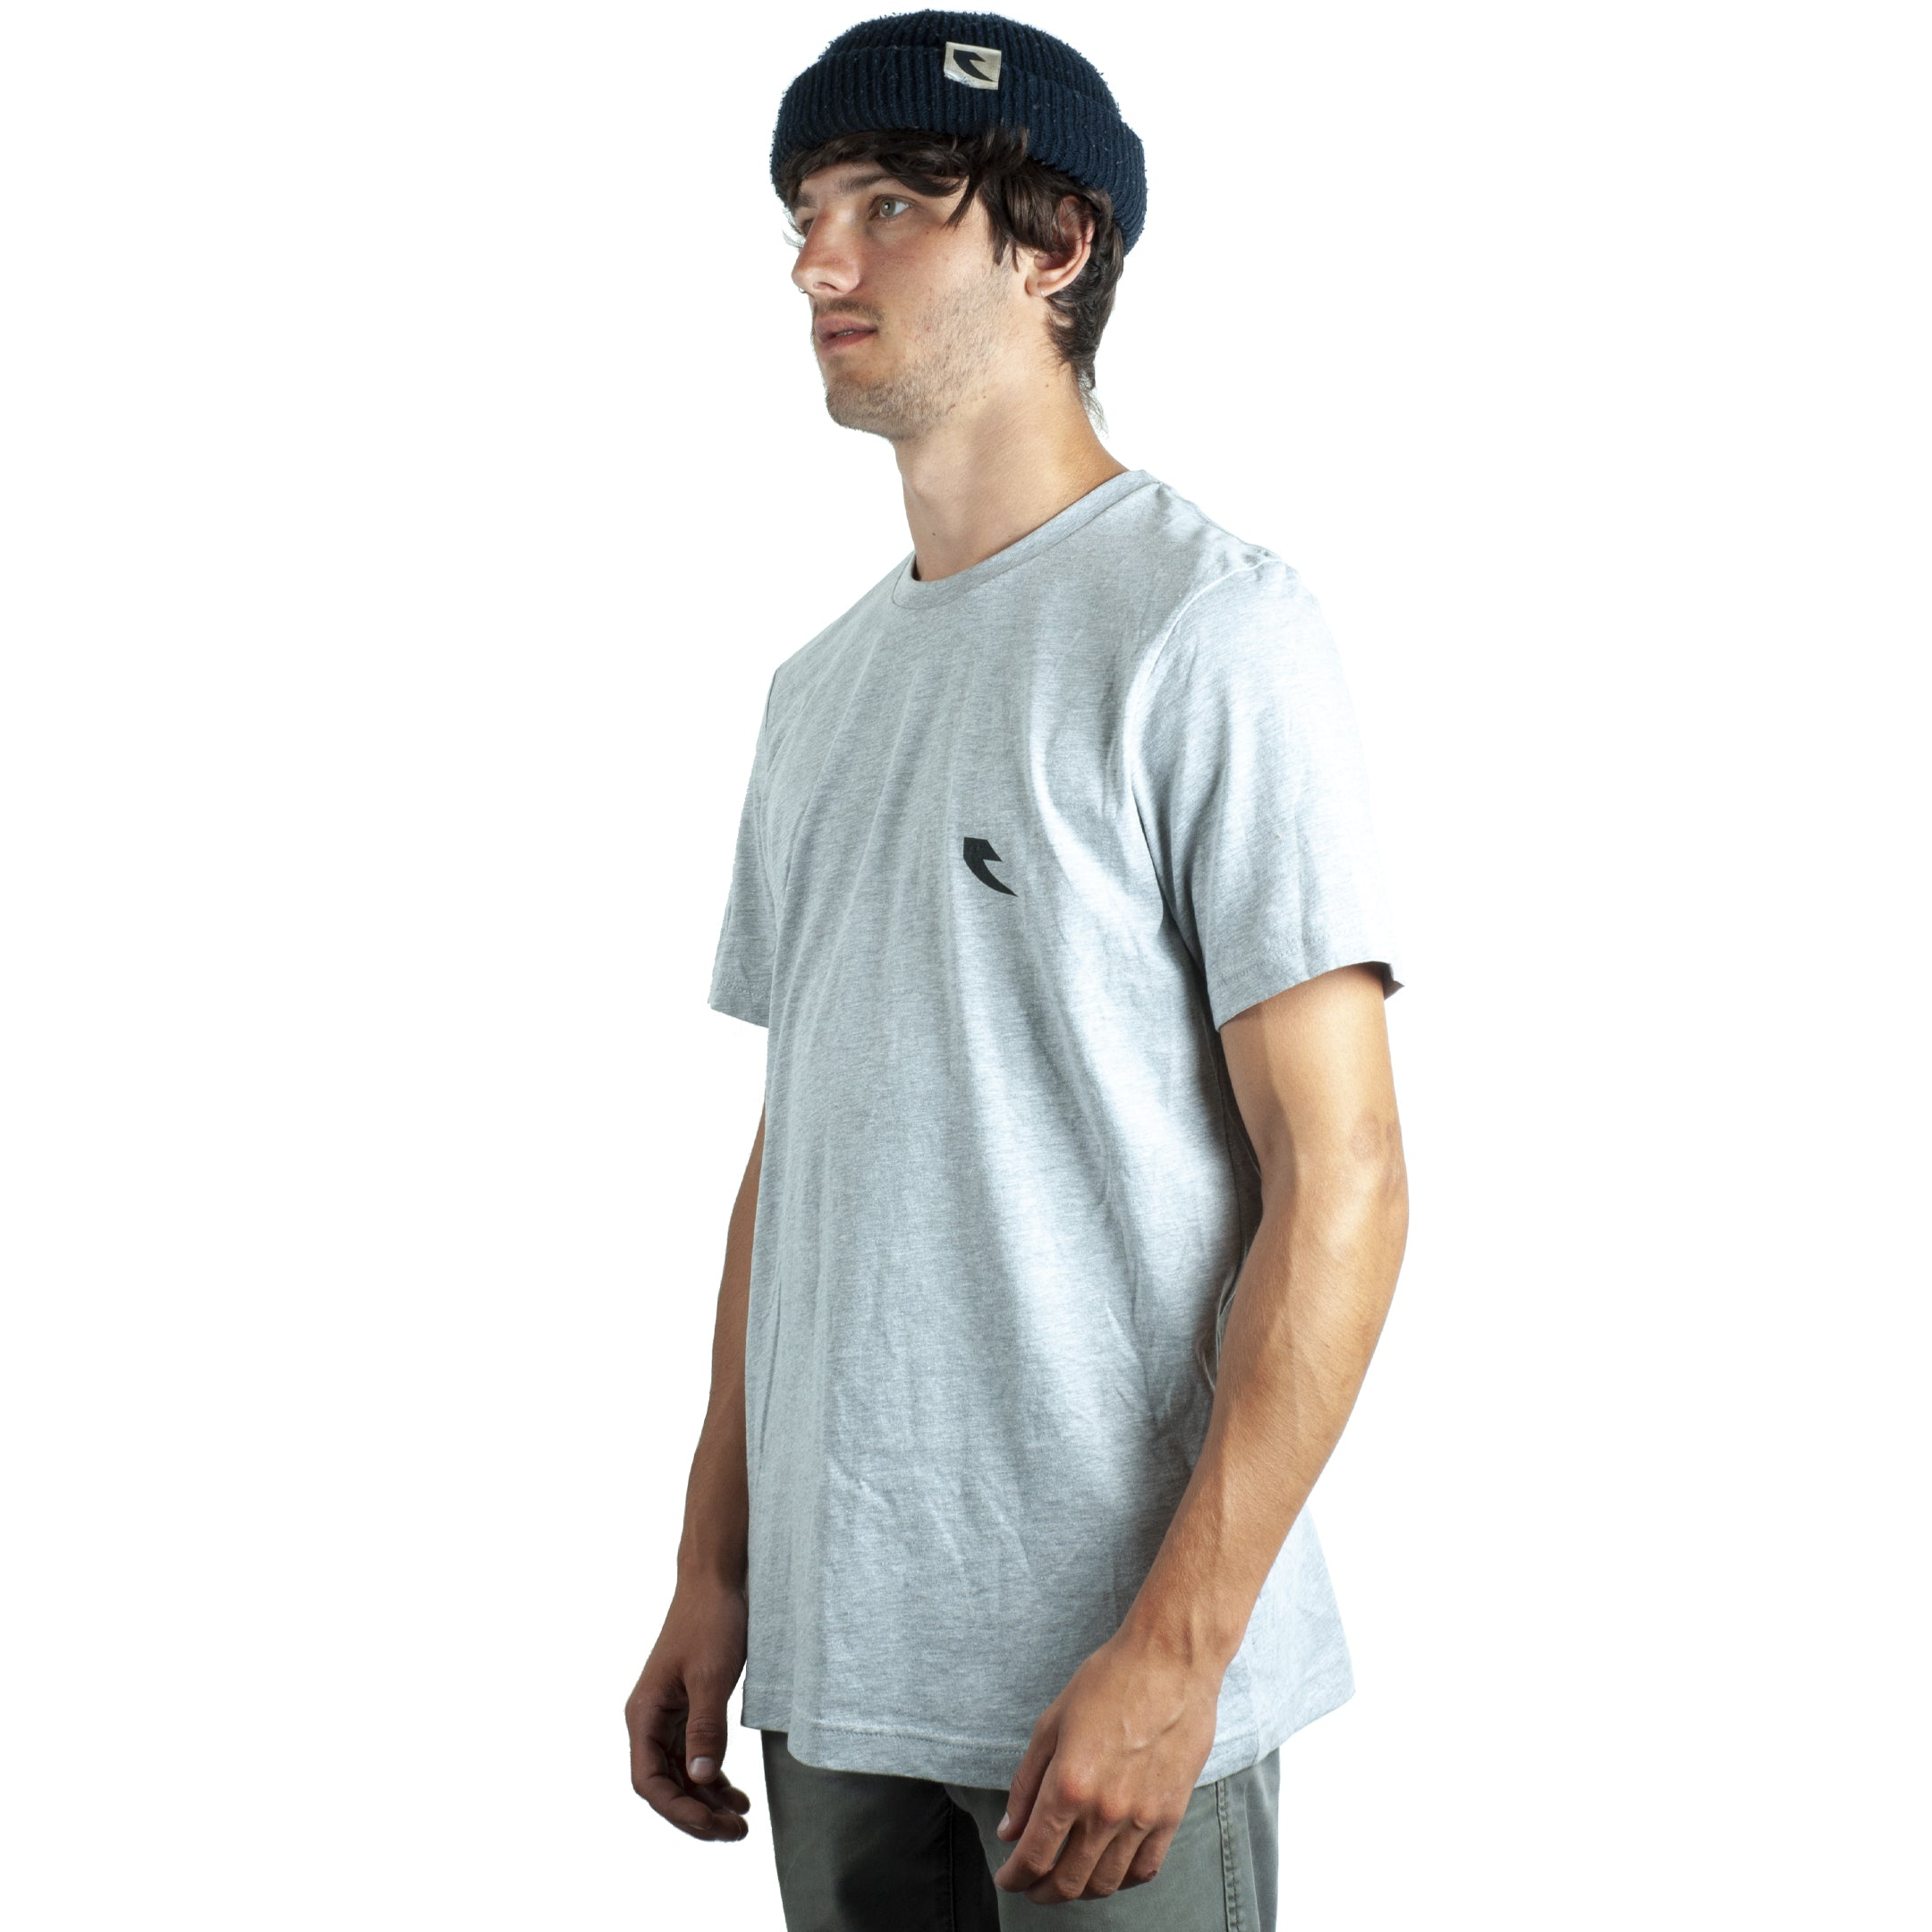 Tall Order Square Logo T-Shirt - Grey With Black Print | BMX